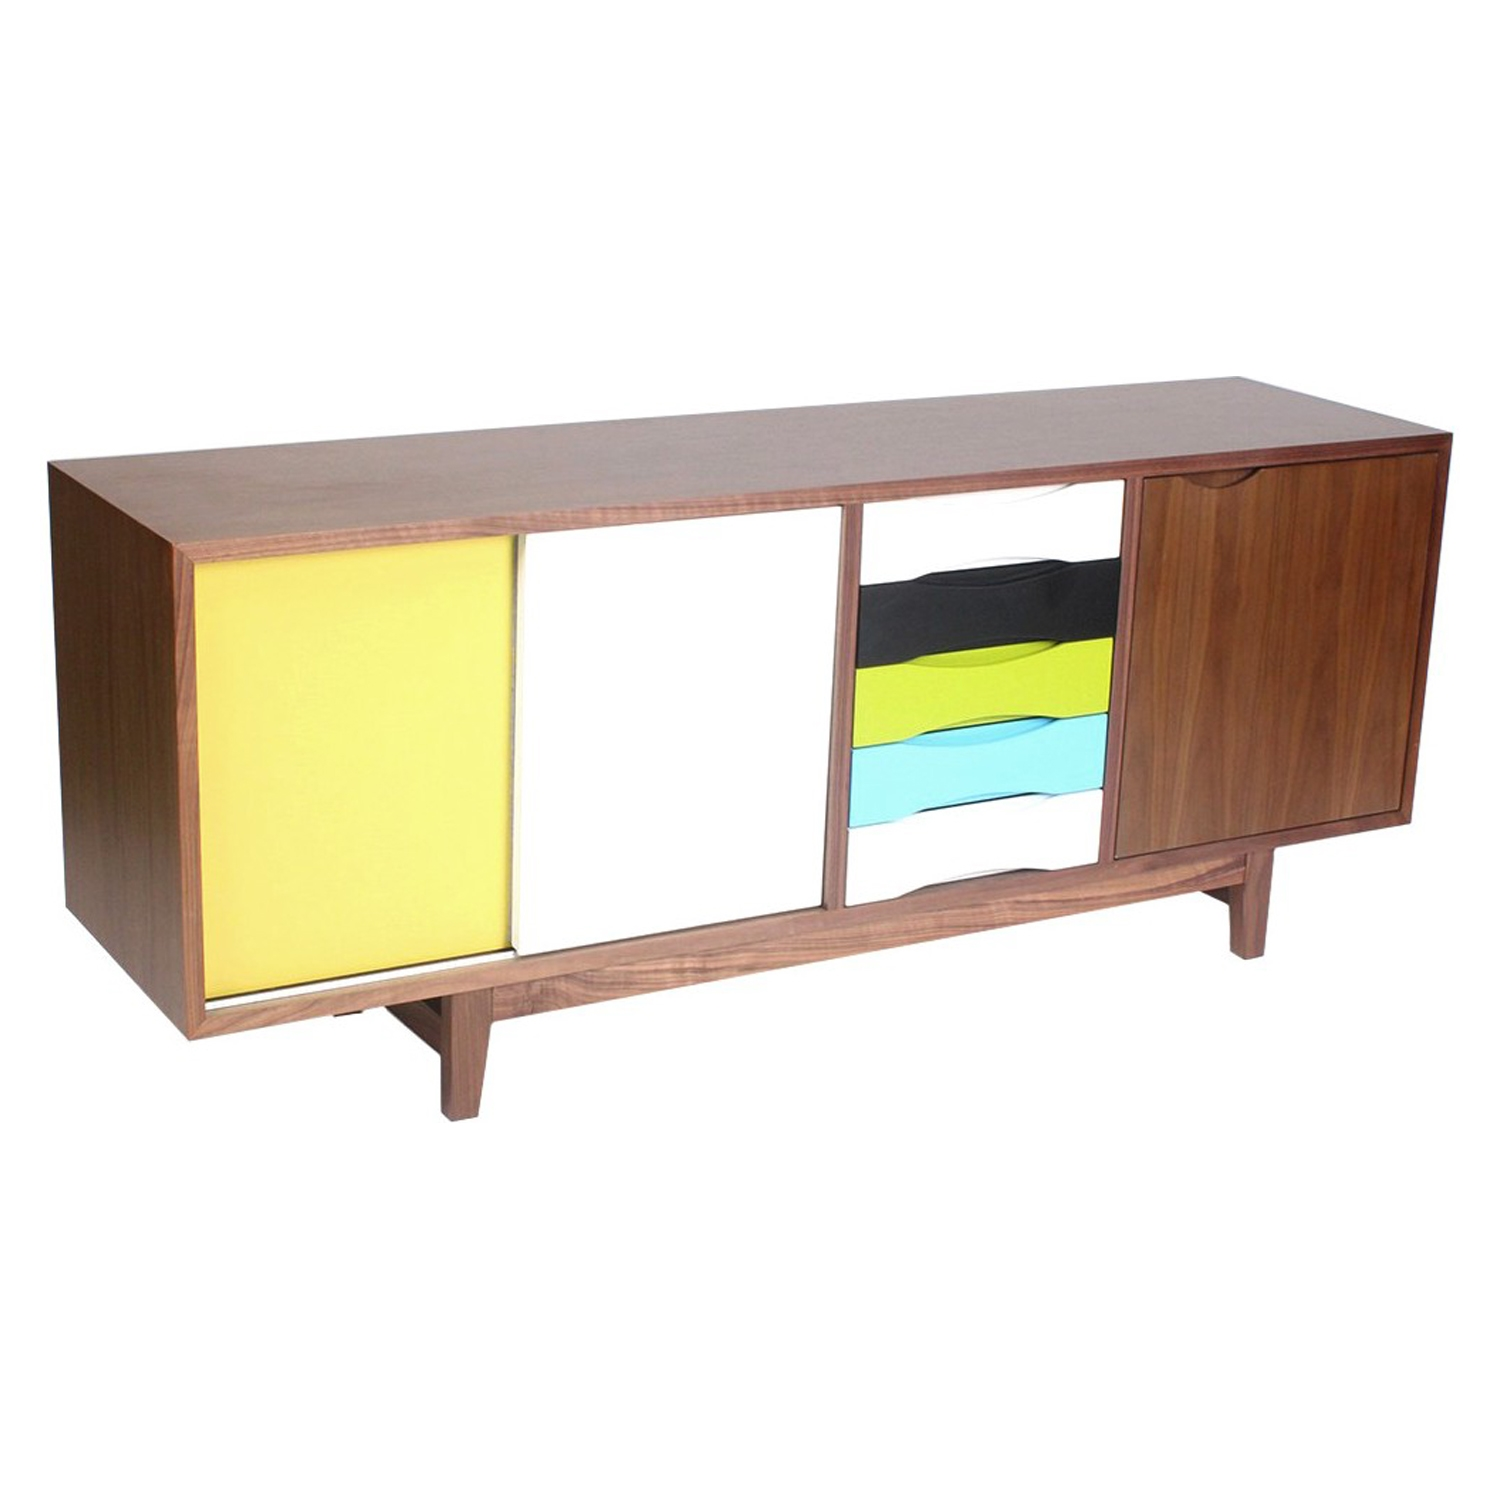 Kelda Sideboard - Walnut and Yellow - NYEK-445528M